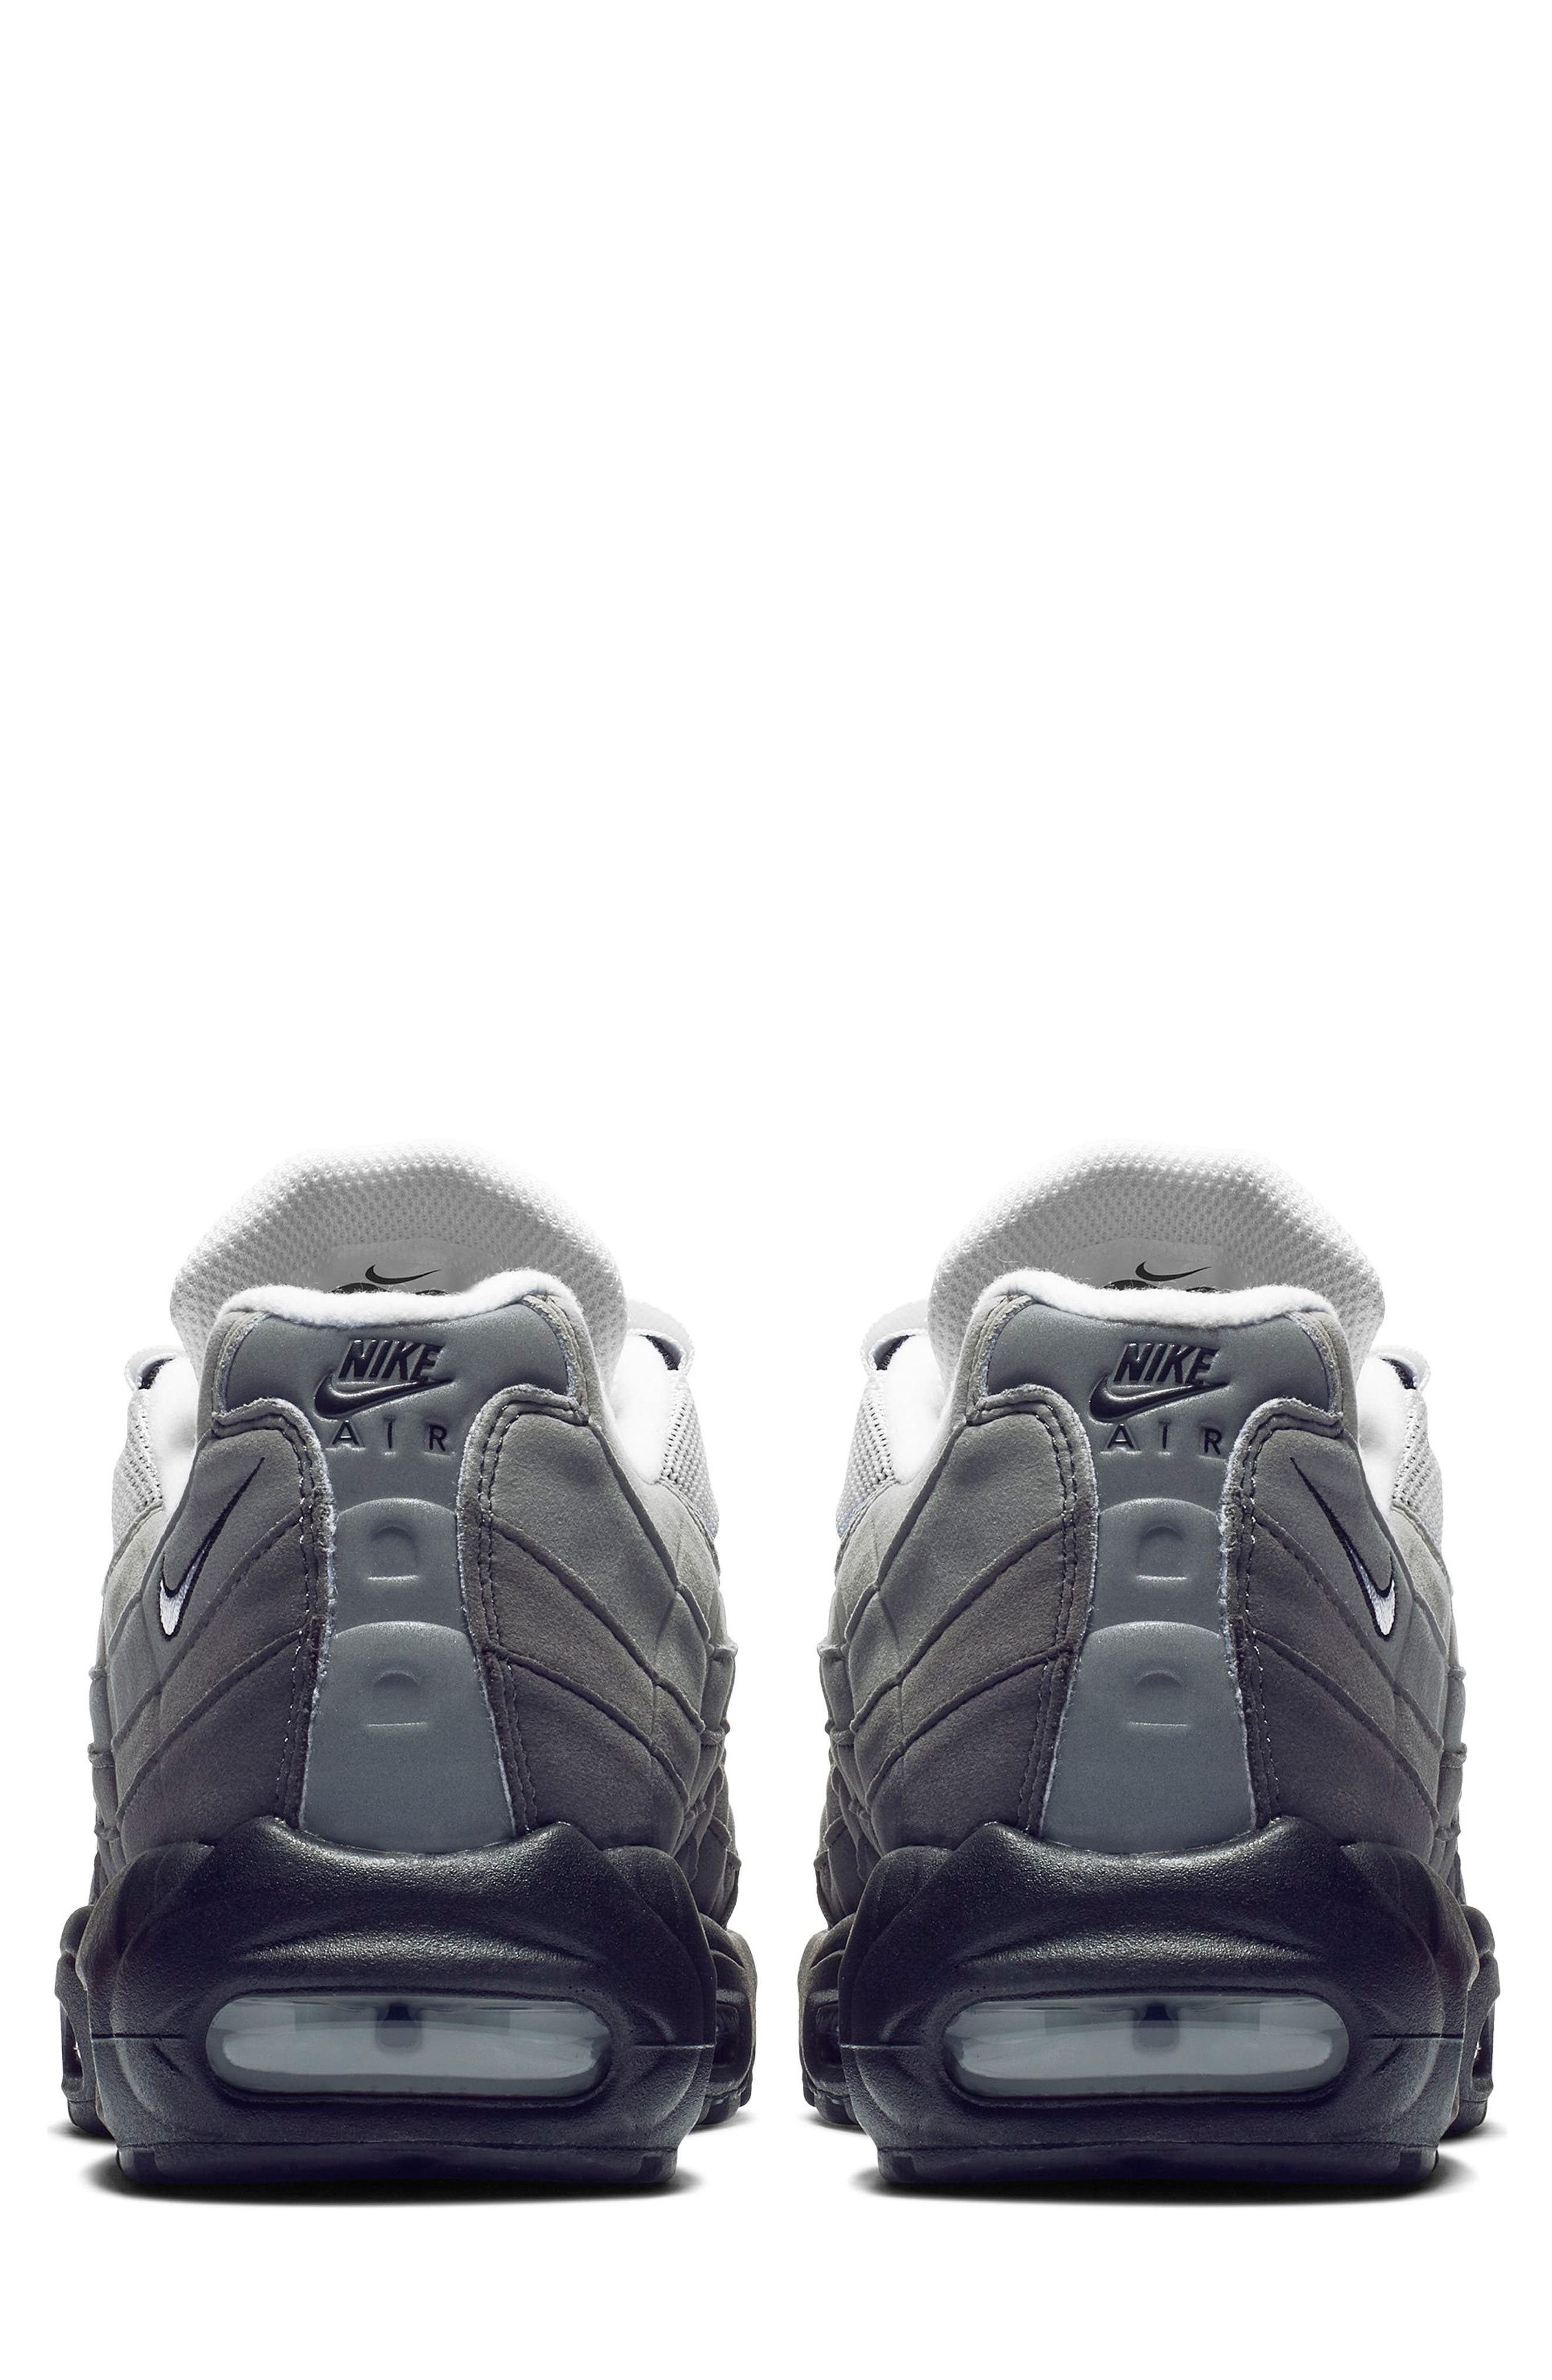 NIKE, Air Max 95 OG Sneaker, Alternate thumbnail 2, color, BLACK/ WHITE/ GRANITE/ DUST